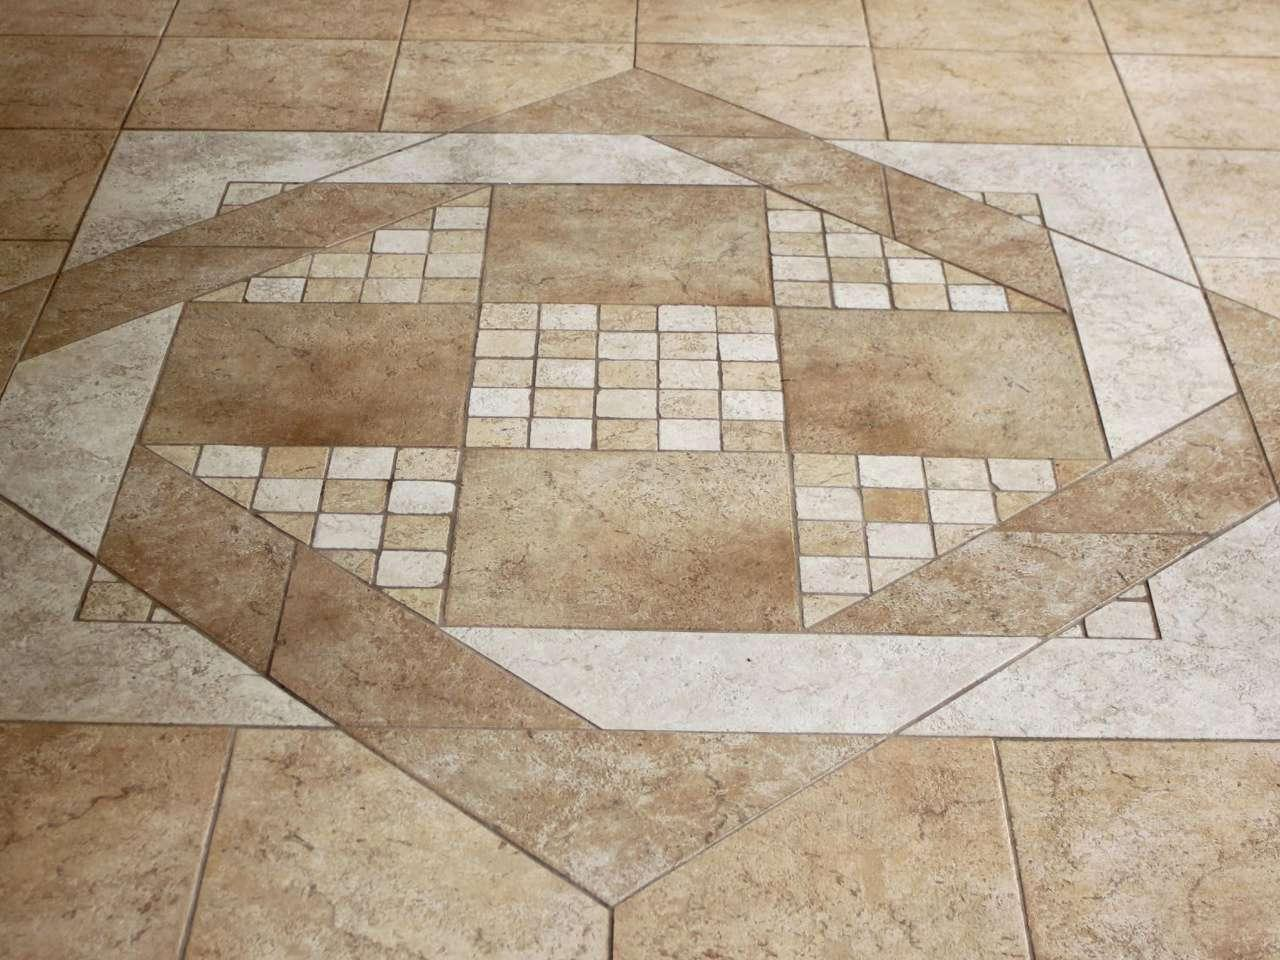 Ceramic tile michigan gallery tile flooring design ideas vigas vigas tile michigan doublecrazyfo gallery doublecrazyfo Gallery